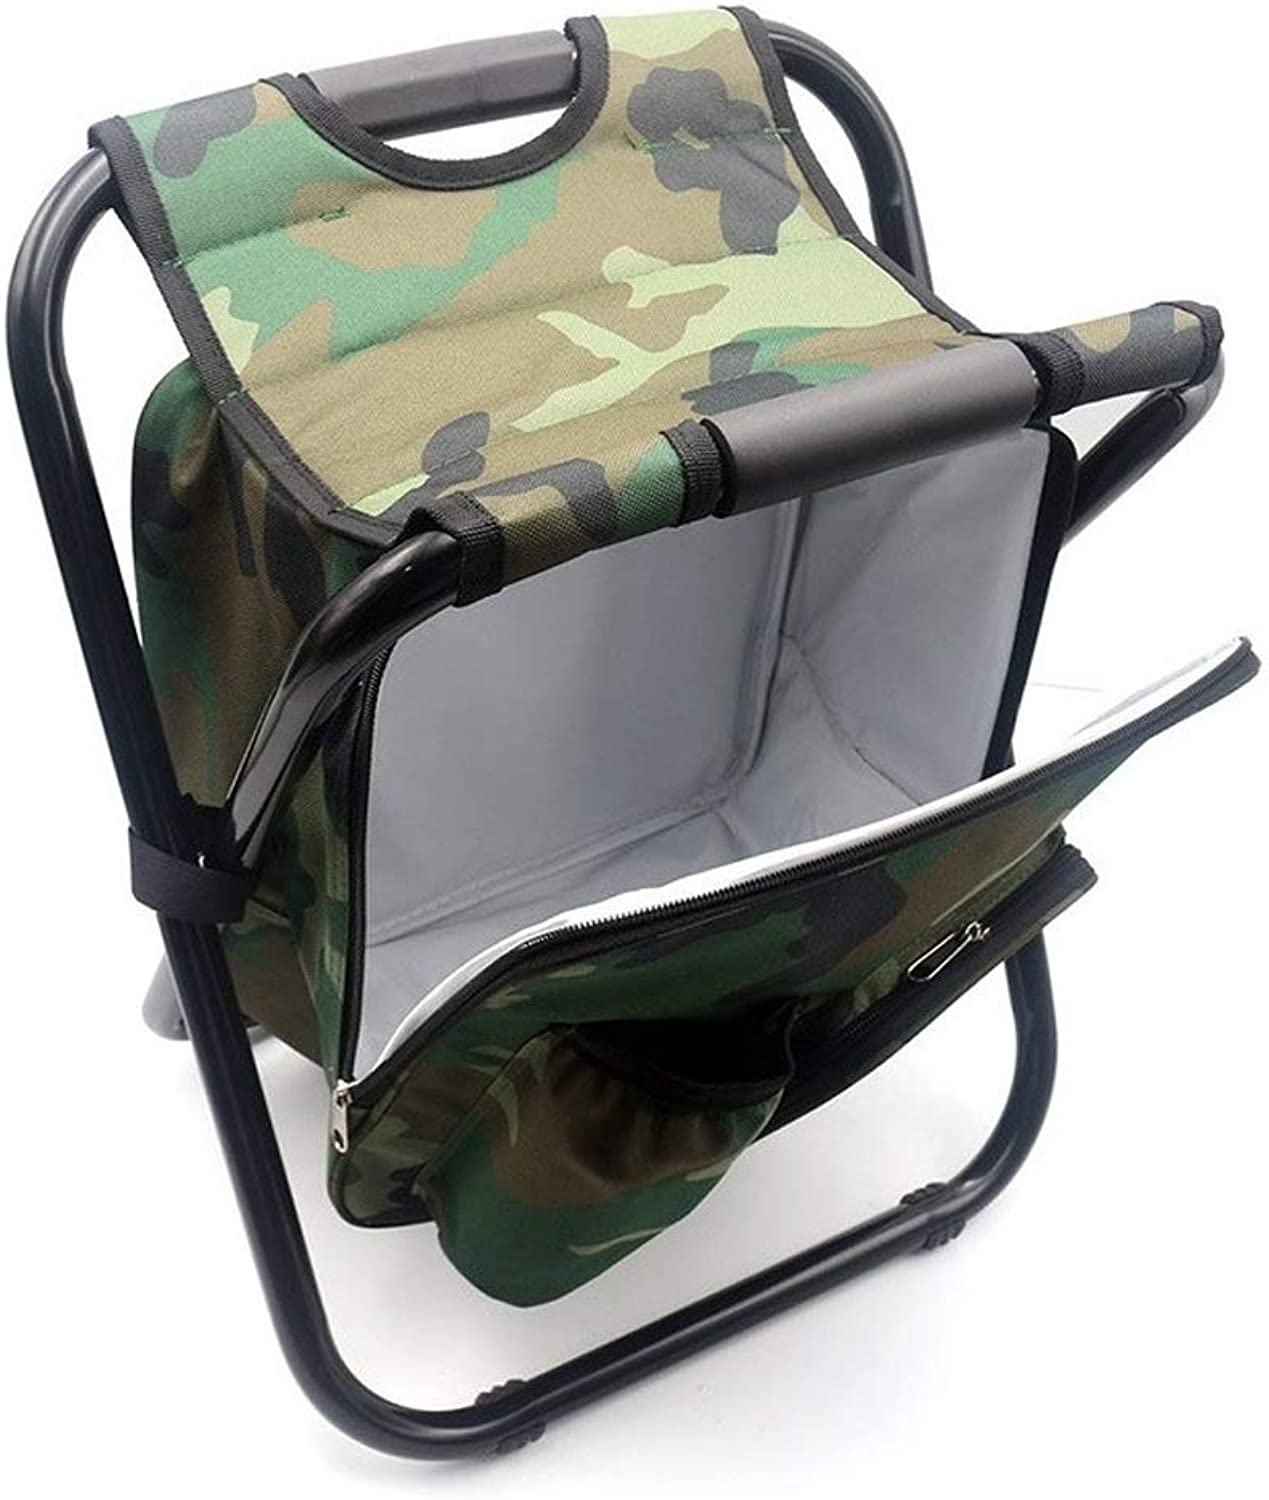 RFJJAL Folding Camping Fishing Chair Stool Backpack with Cooler Insulated Picnic Bag Hiking Camouflage Seat Table Bag